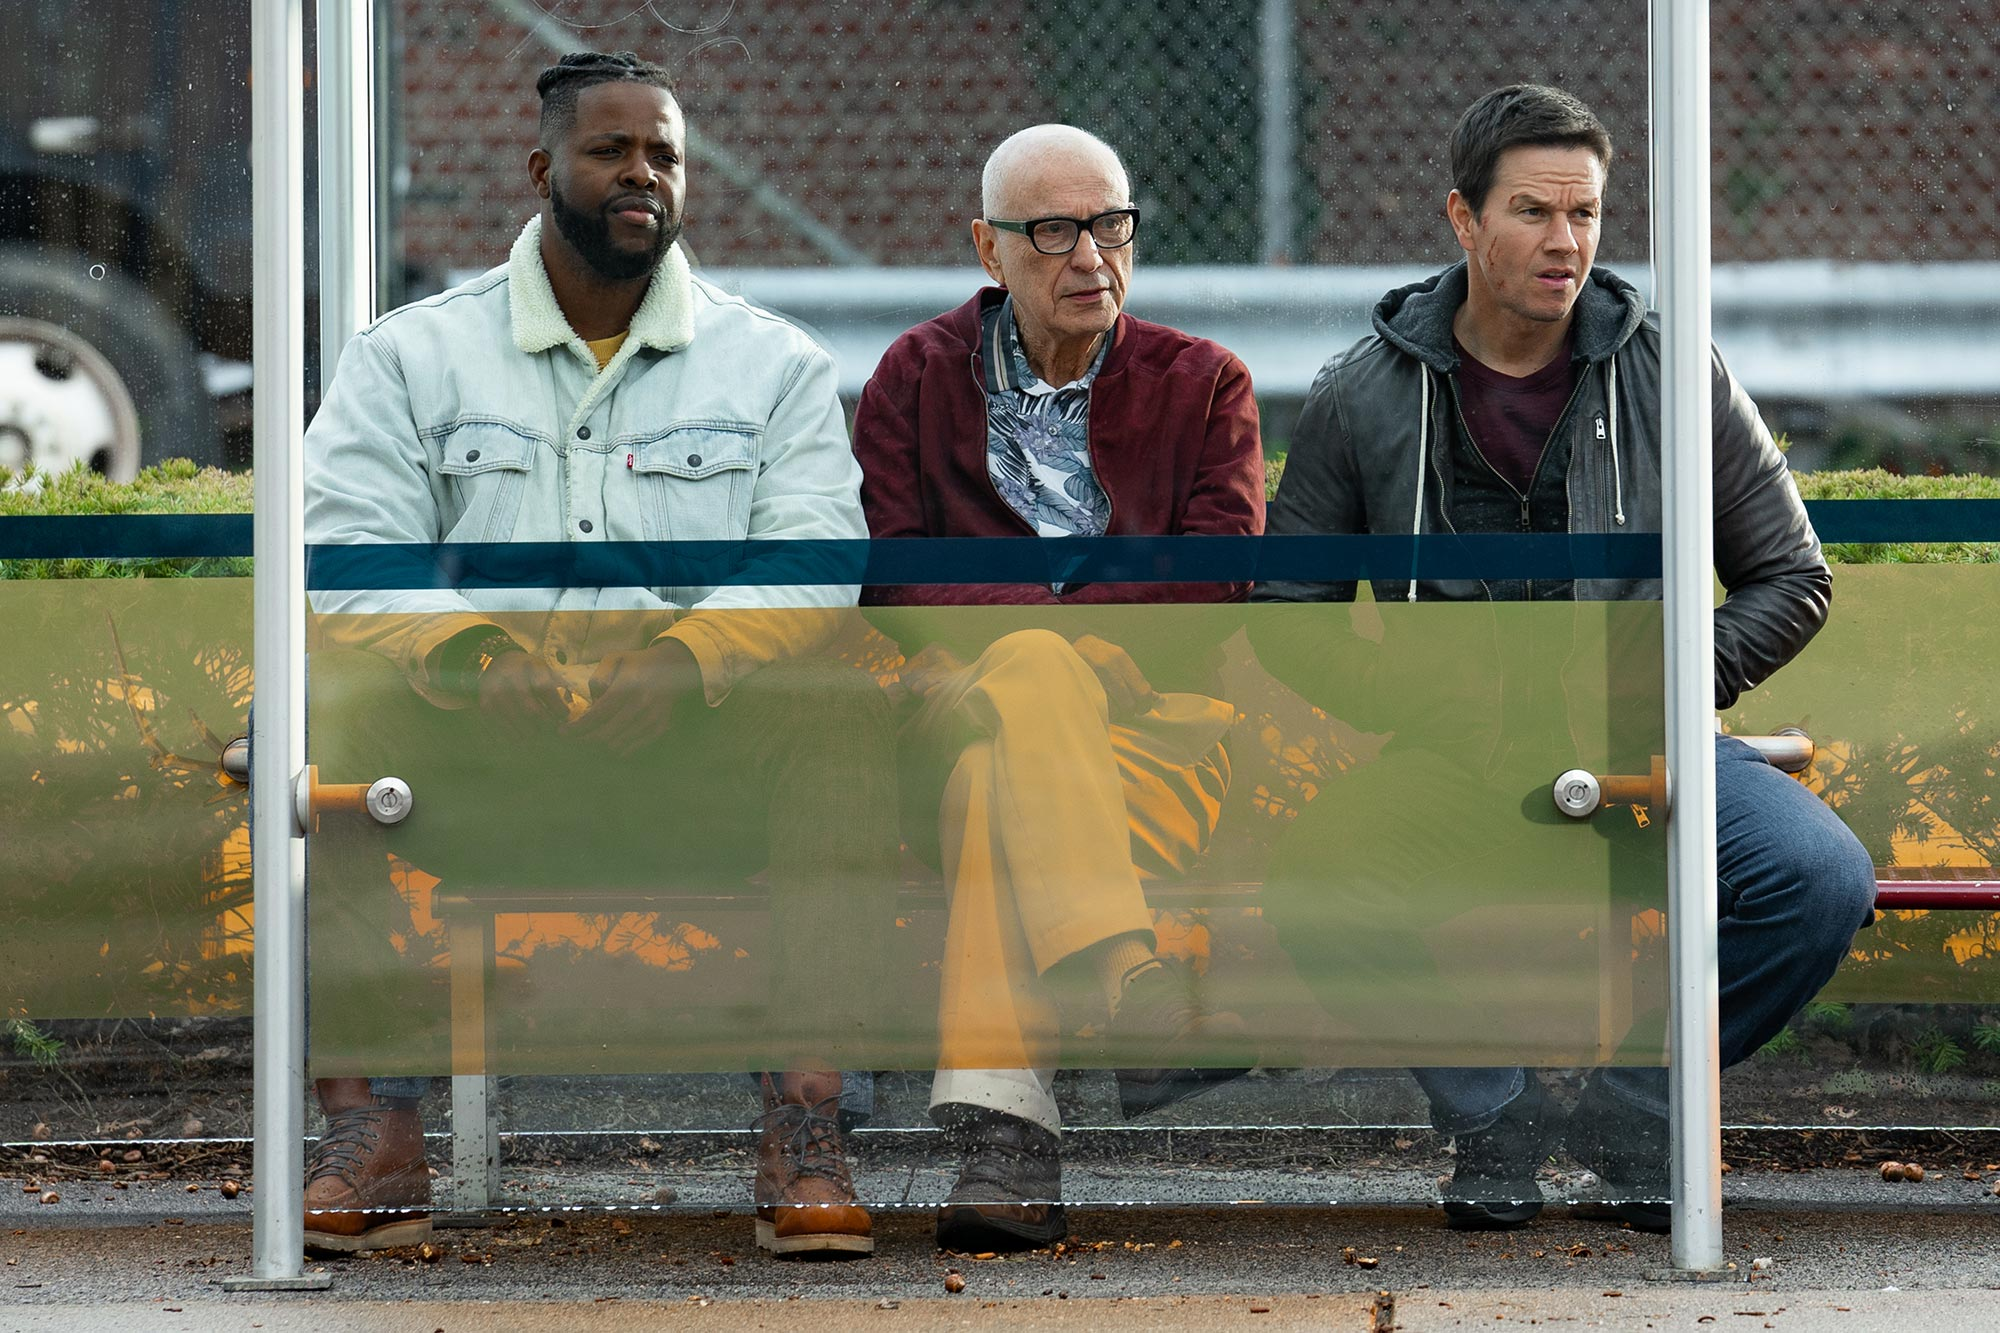 Spenser Confidential Review Mark Wahlberg Smashes Crime And Logic In Netflix Thriller Ew Com